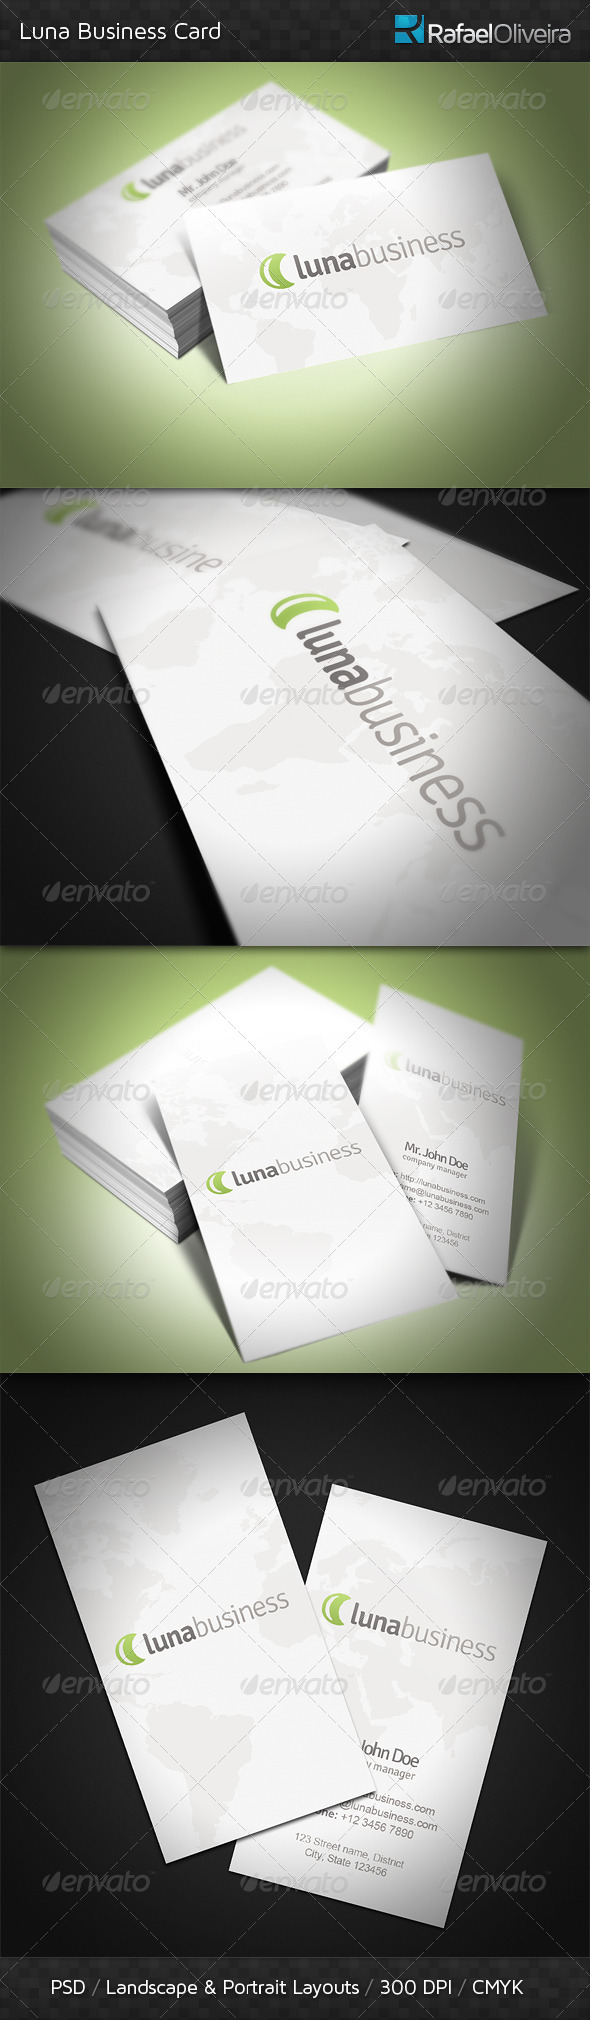 Luna Business Card - Corporate Business Cards